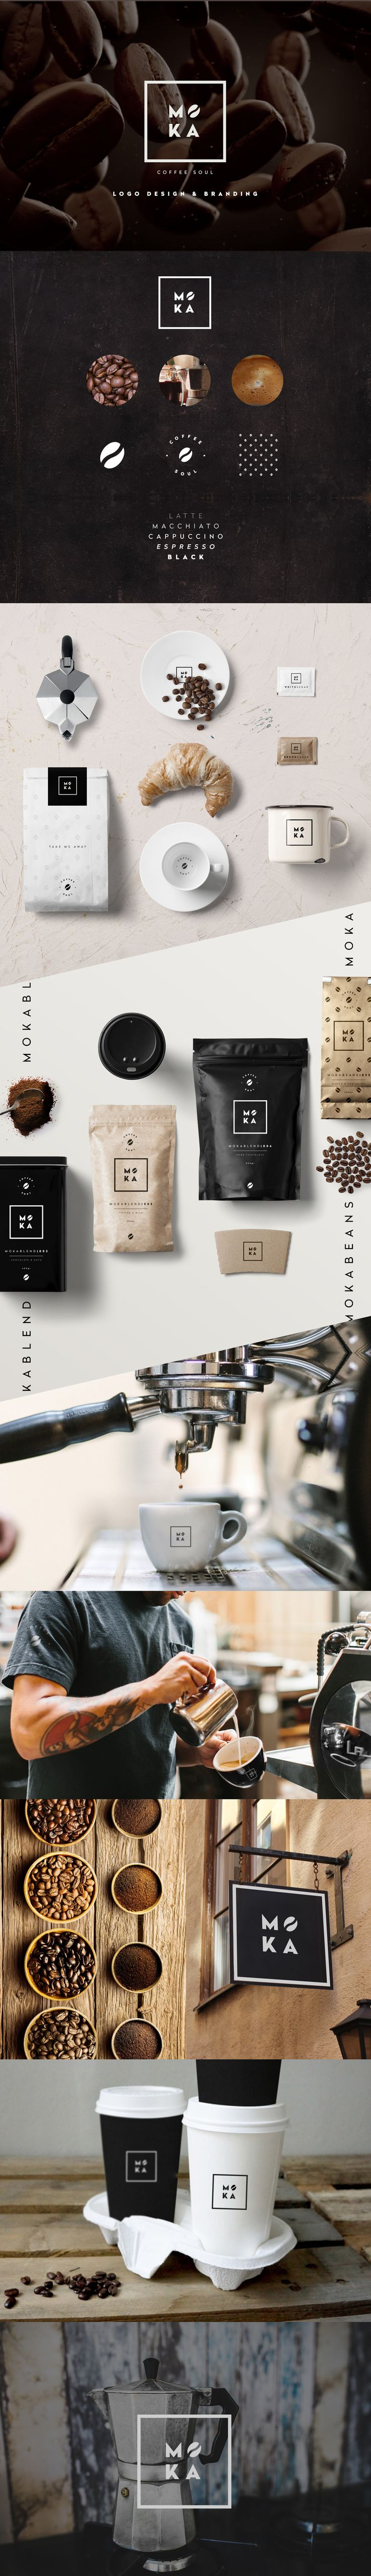 Concept for a Coffee brand. More